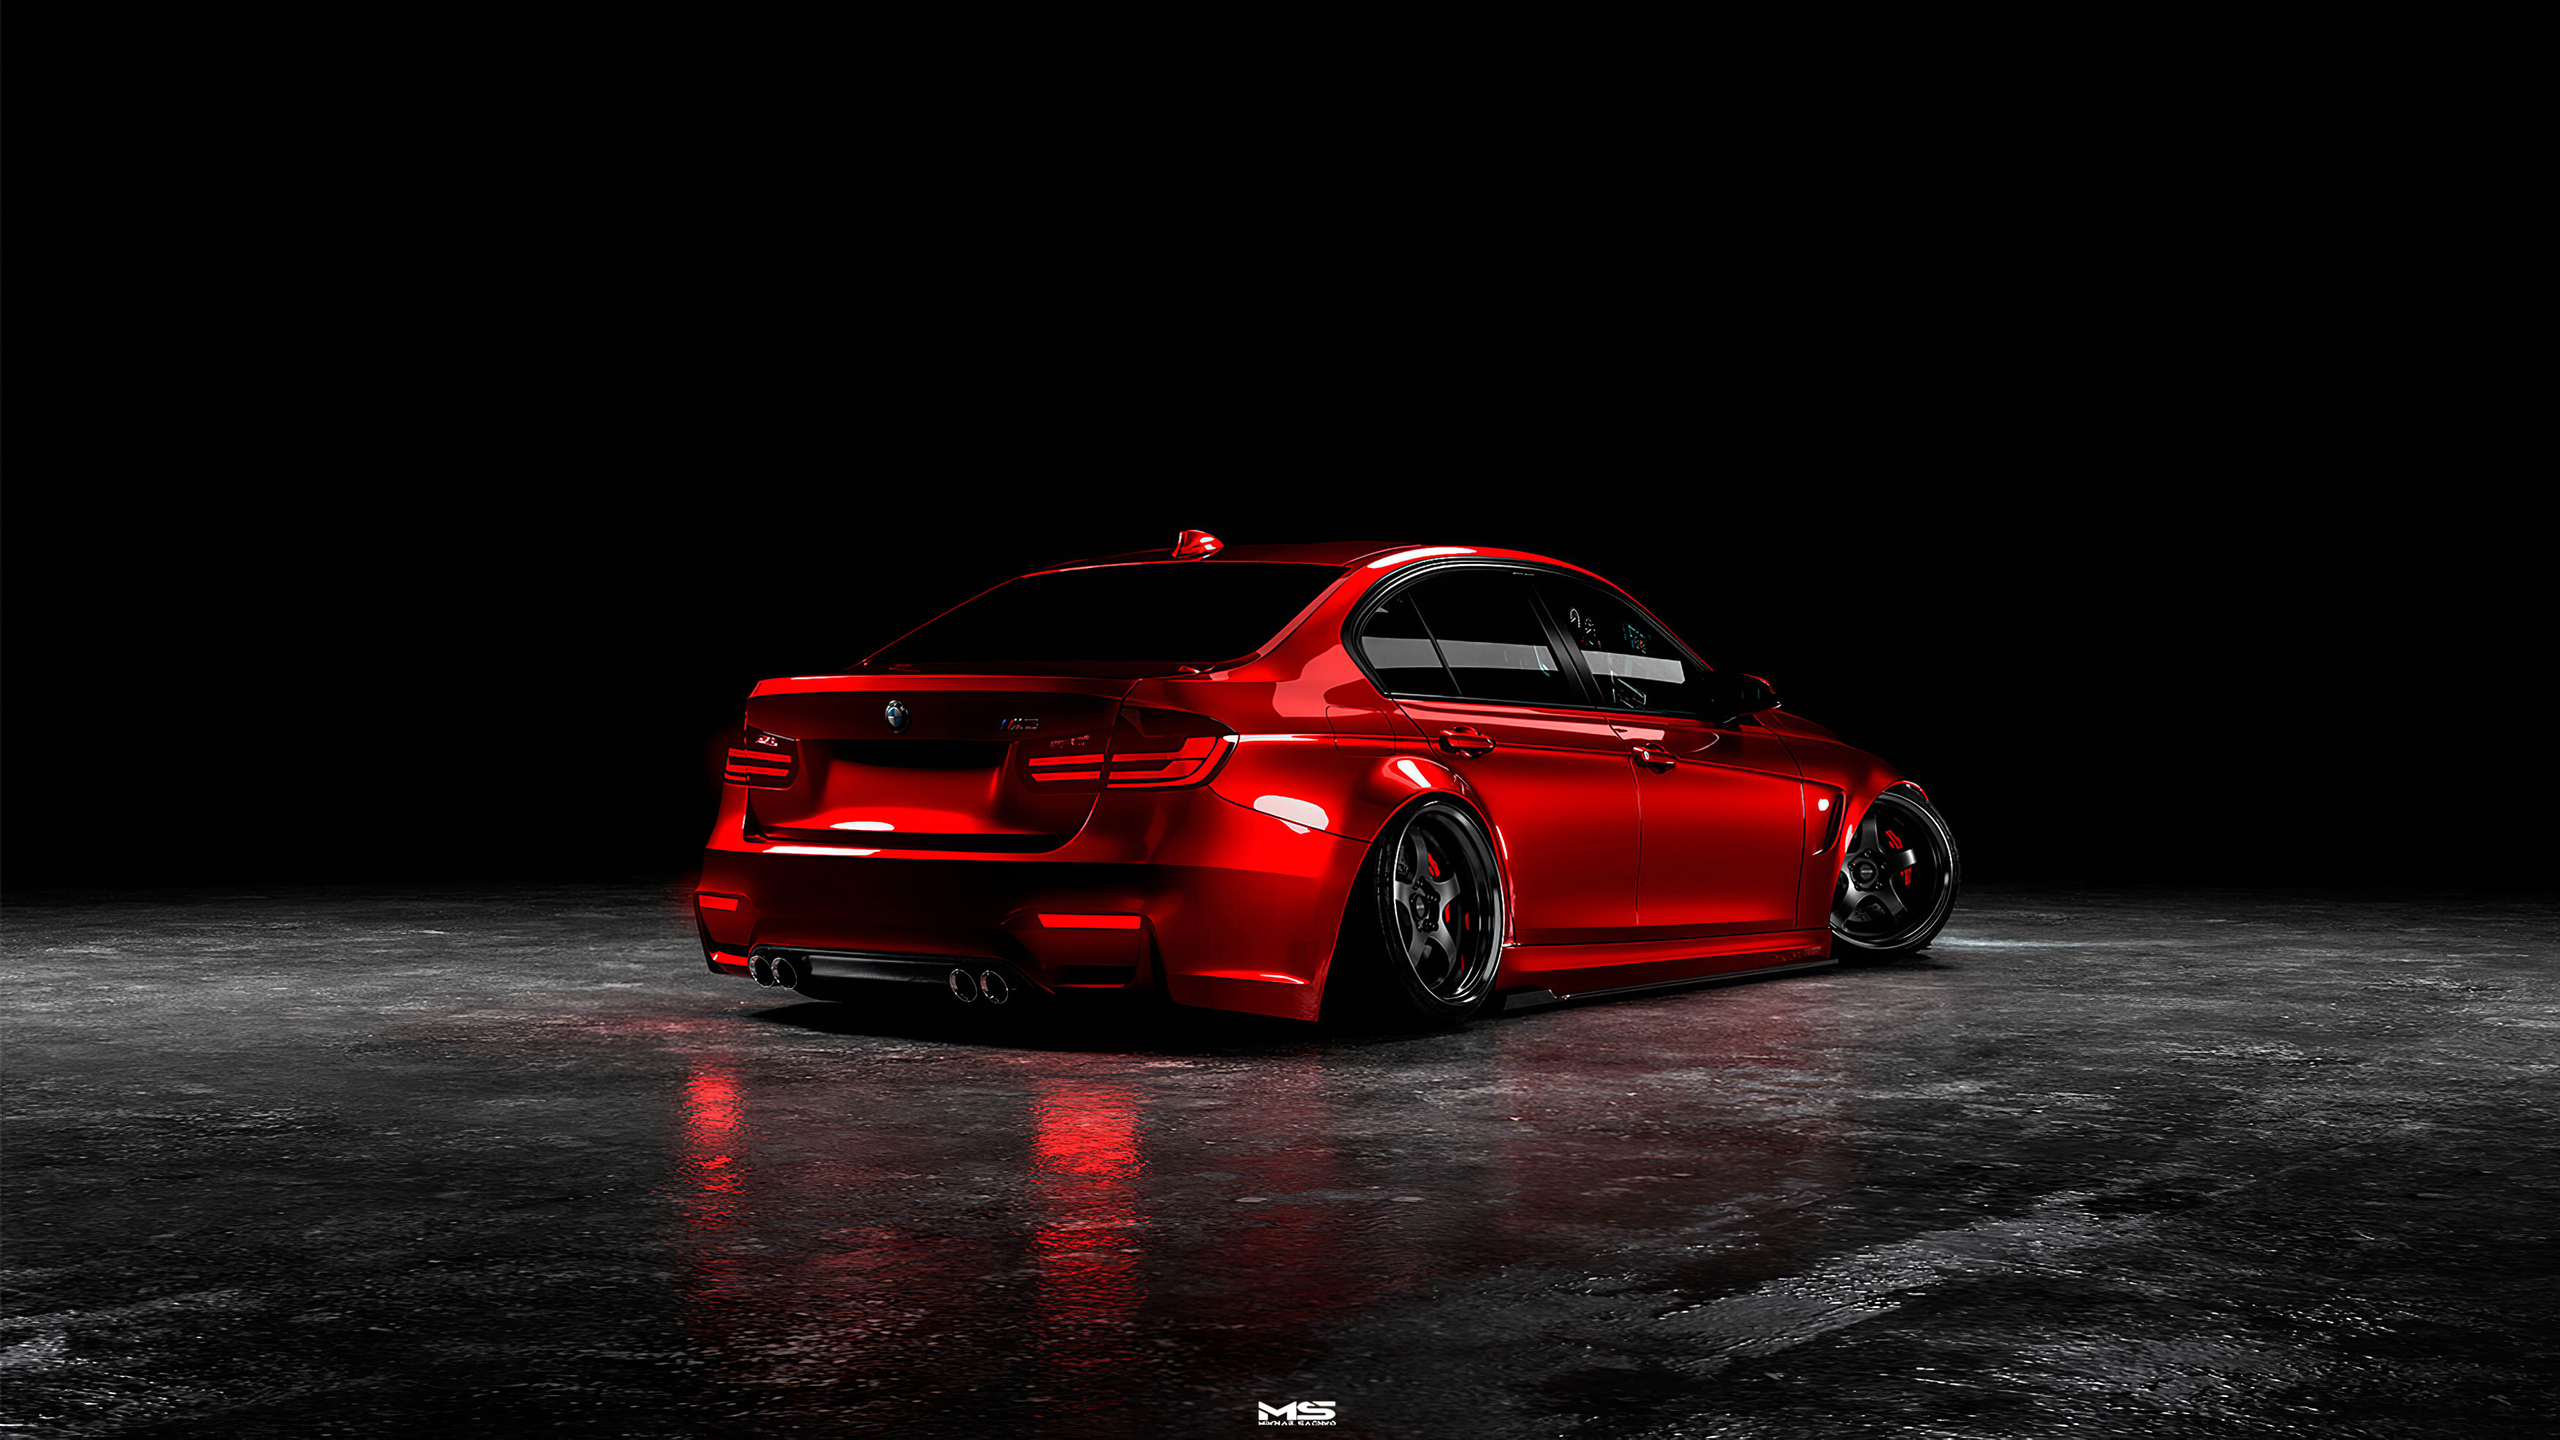 2560x1440 Bmw M3 F30 4k 1440p Resolution Hd 4k Wallpapers Images Backgrounds Photos And Pictures